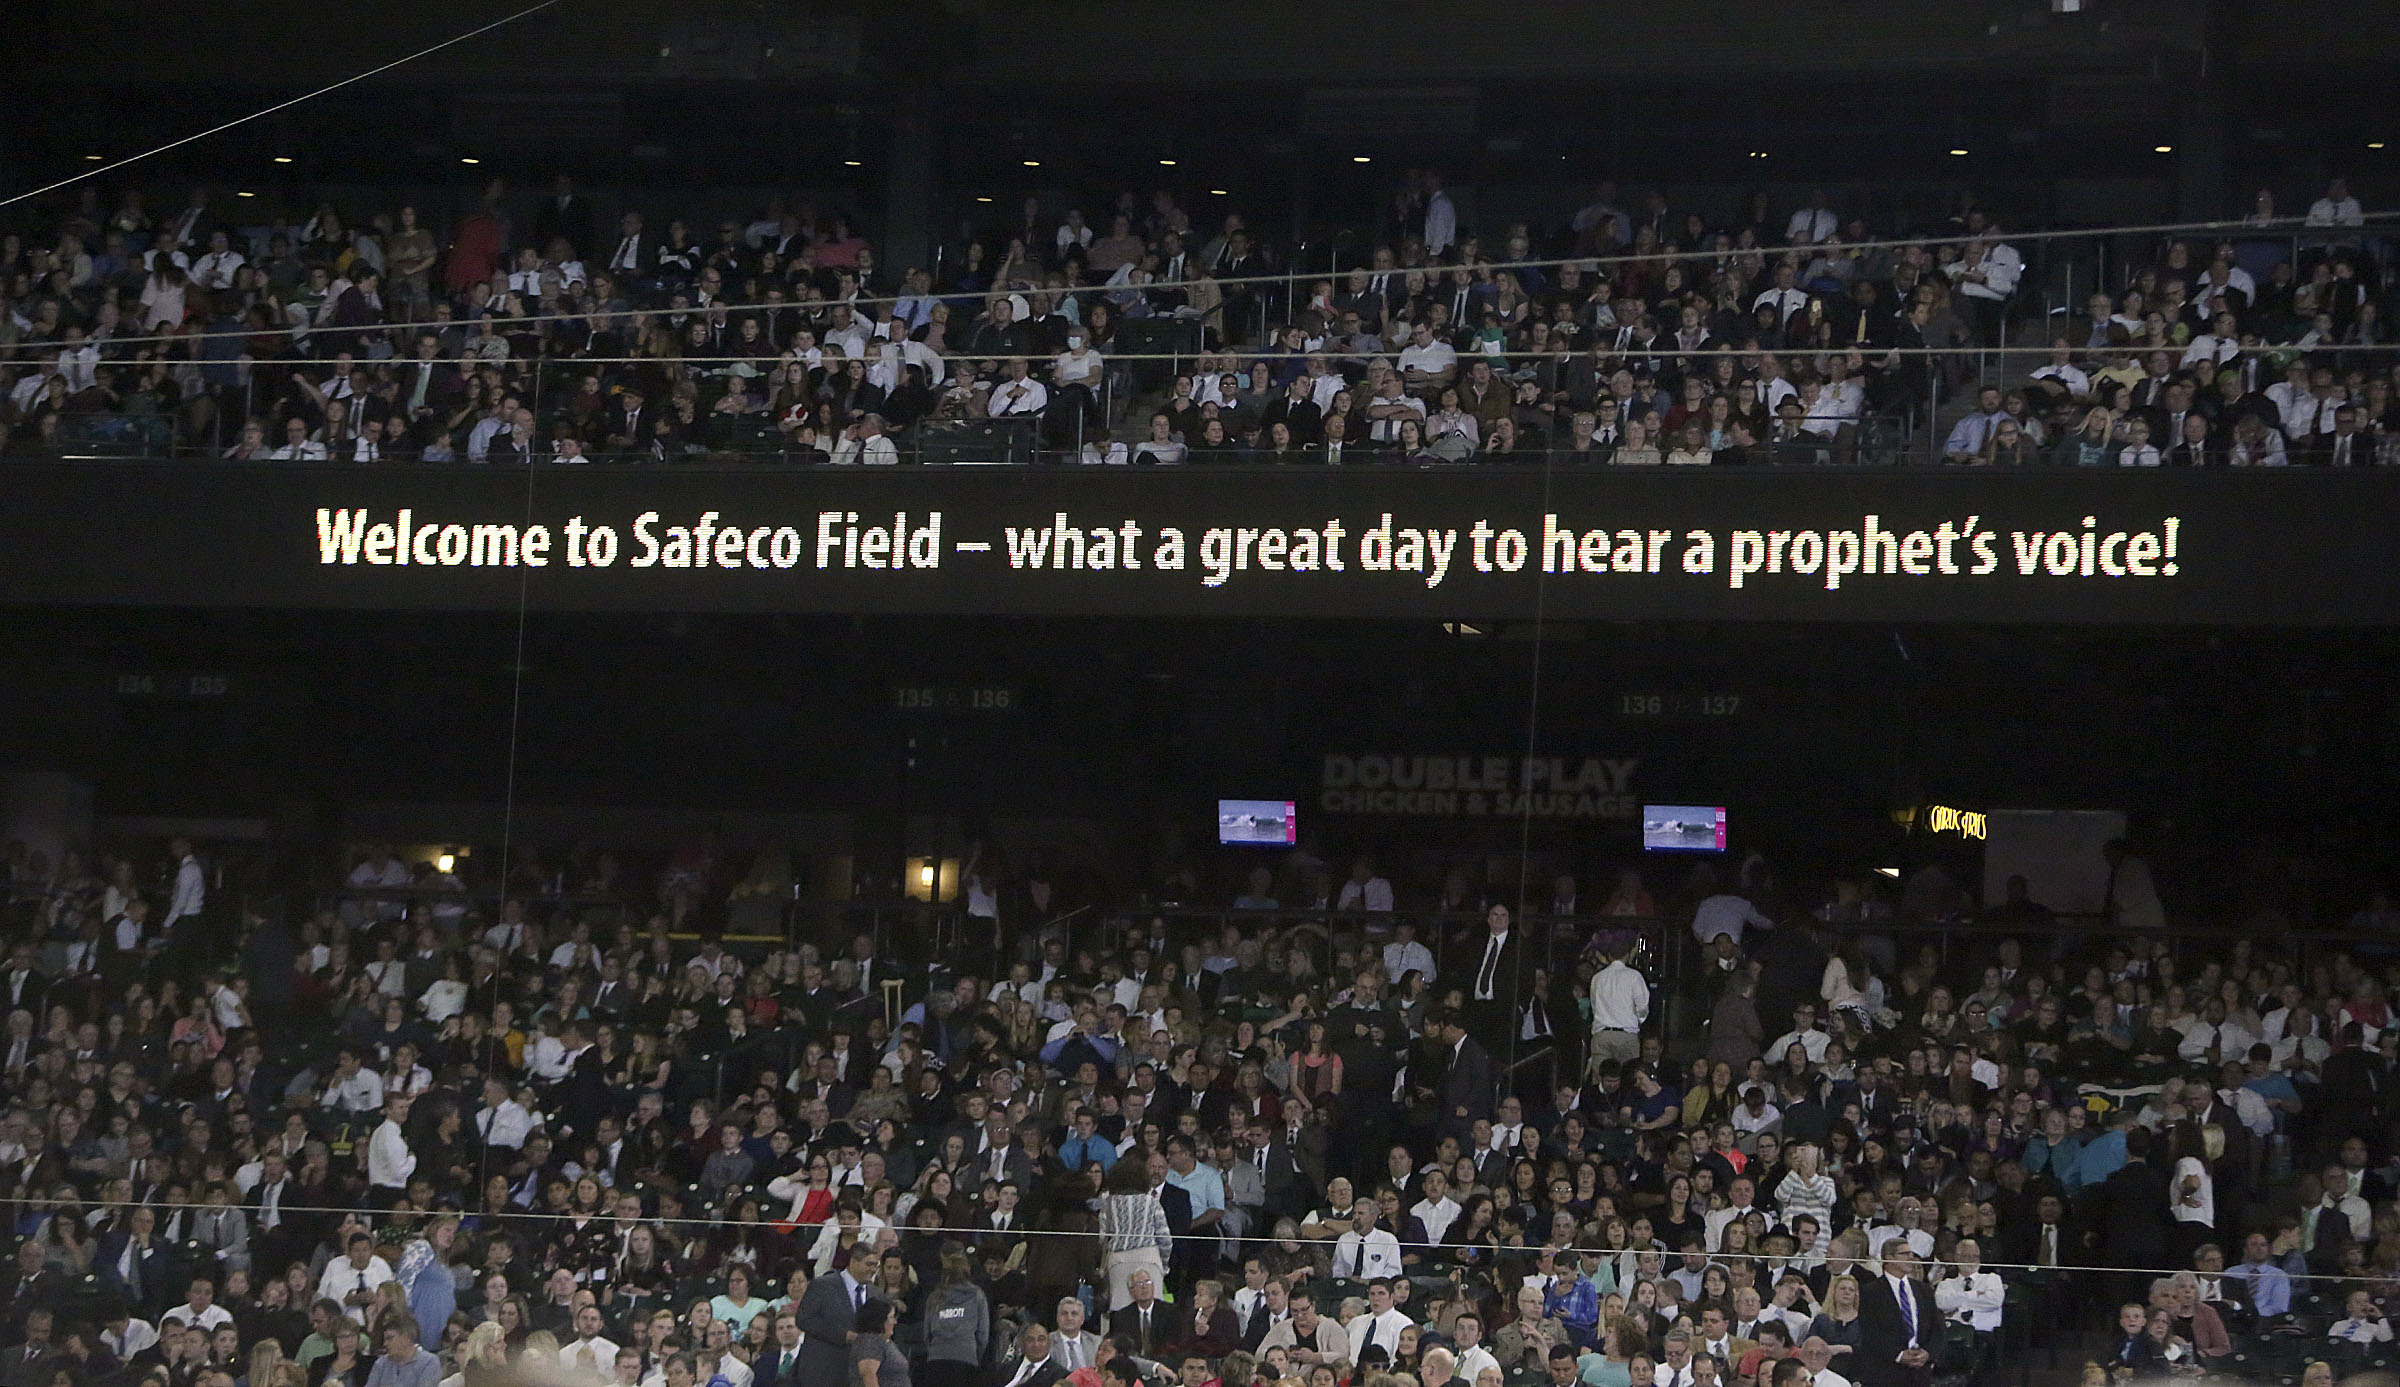 People wait for President Russell M. Nelson of The Church of Jesus Christ of Latter-day Saints to speak at Safeco Field in Seattle, Wash., on Saturday, Sept. 15, 2018.